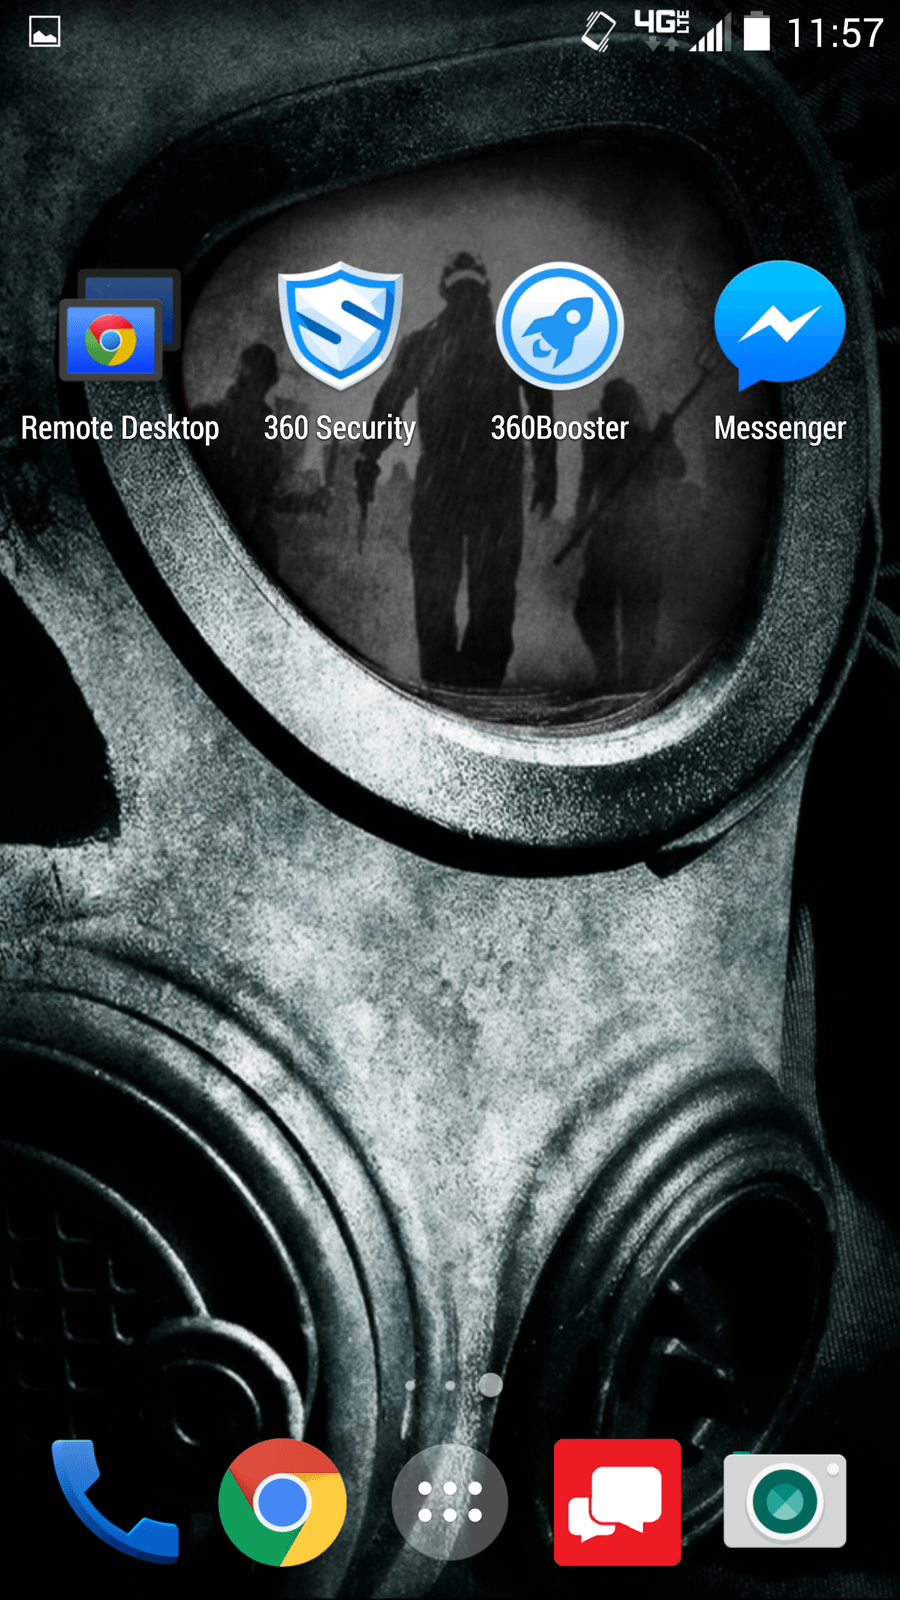 What's on your Screen? - uploadfromtaptalk1427644799446.png